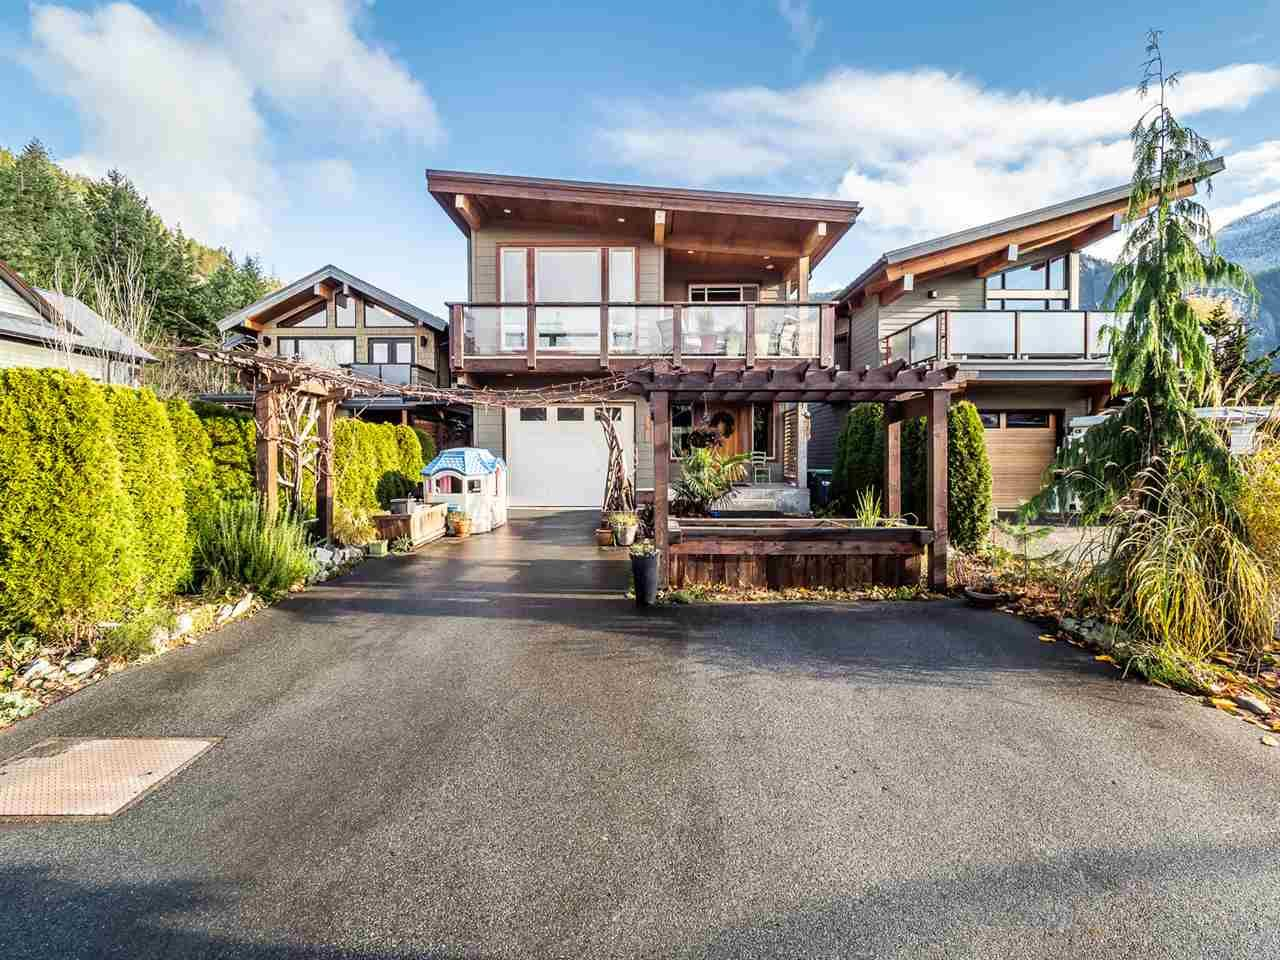 """Main Photo: 1006 PENNYLANE Place in Squamish: Hospital Hill House for sale in """"Hospital Hill"""" : MLS®# R2520358"""